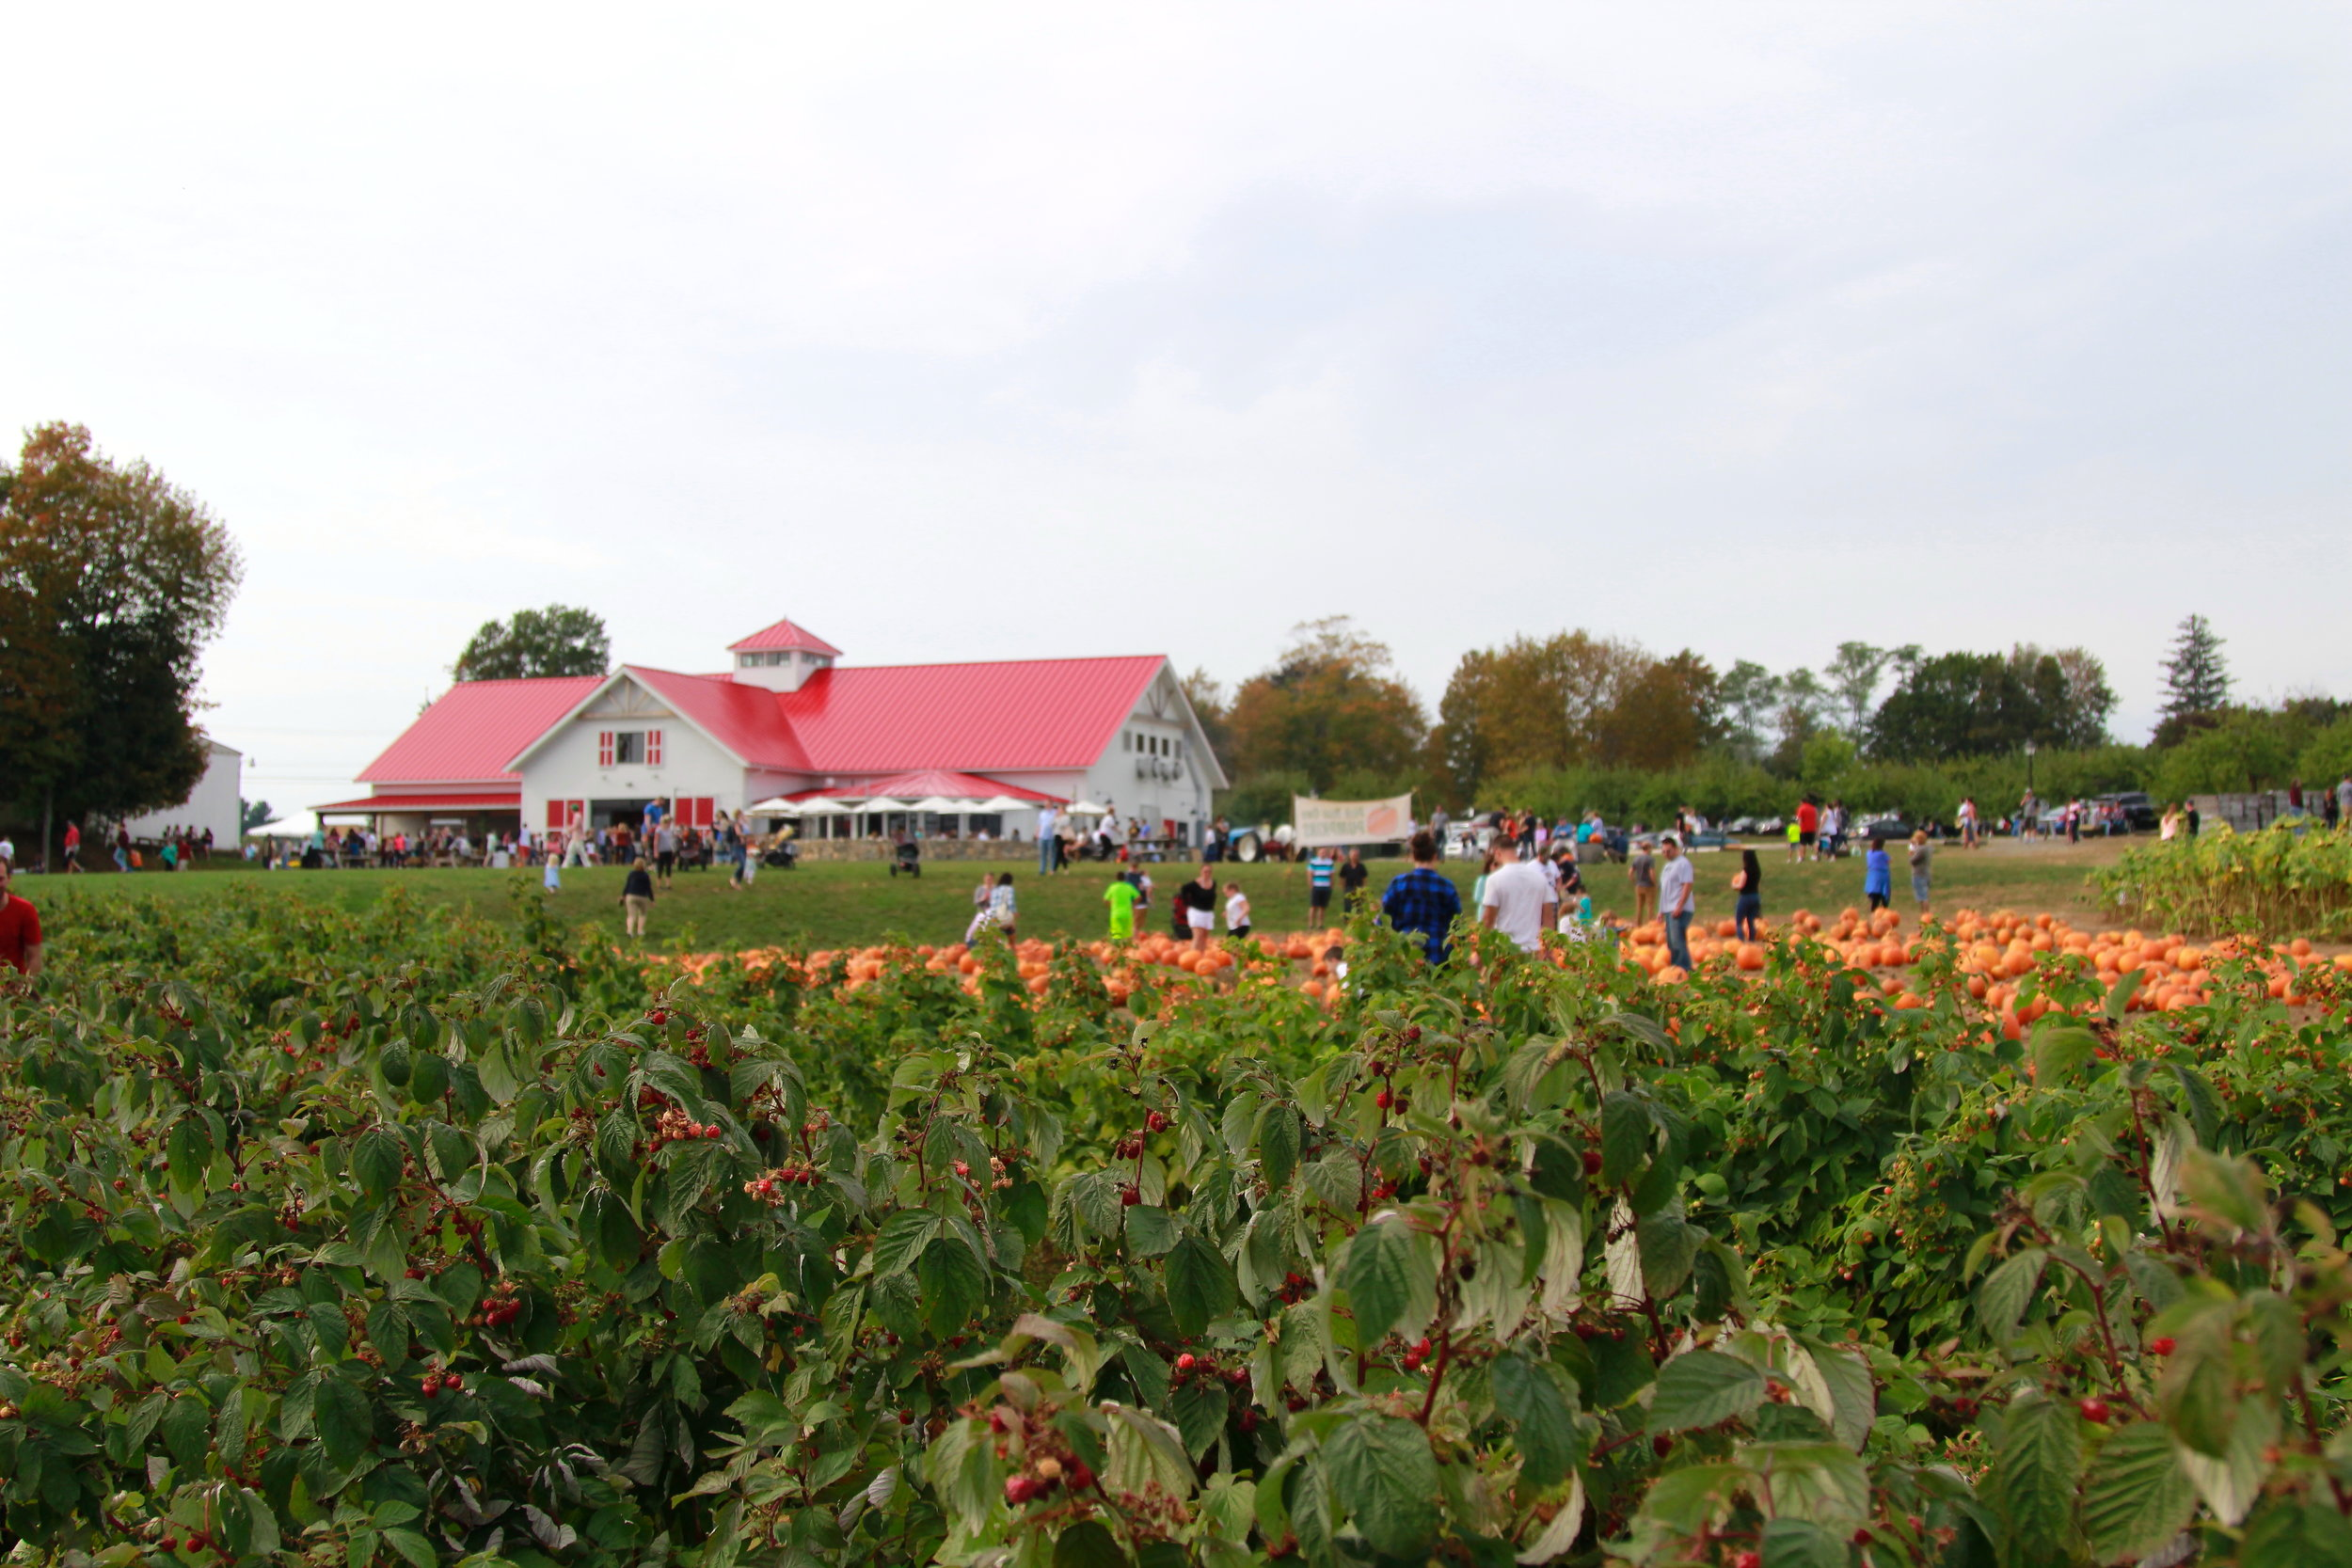 Applecrest Orchard Farm in New Hampshire - pick your own apples, seasonal berries, pumpkins...so fun!